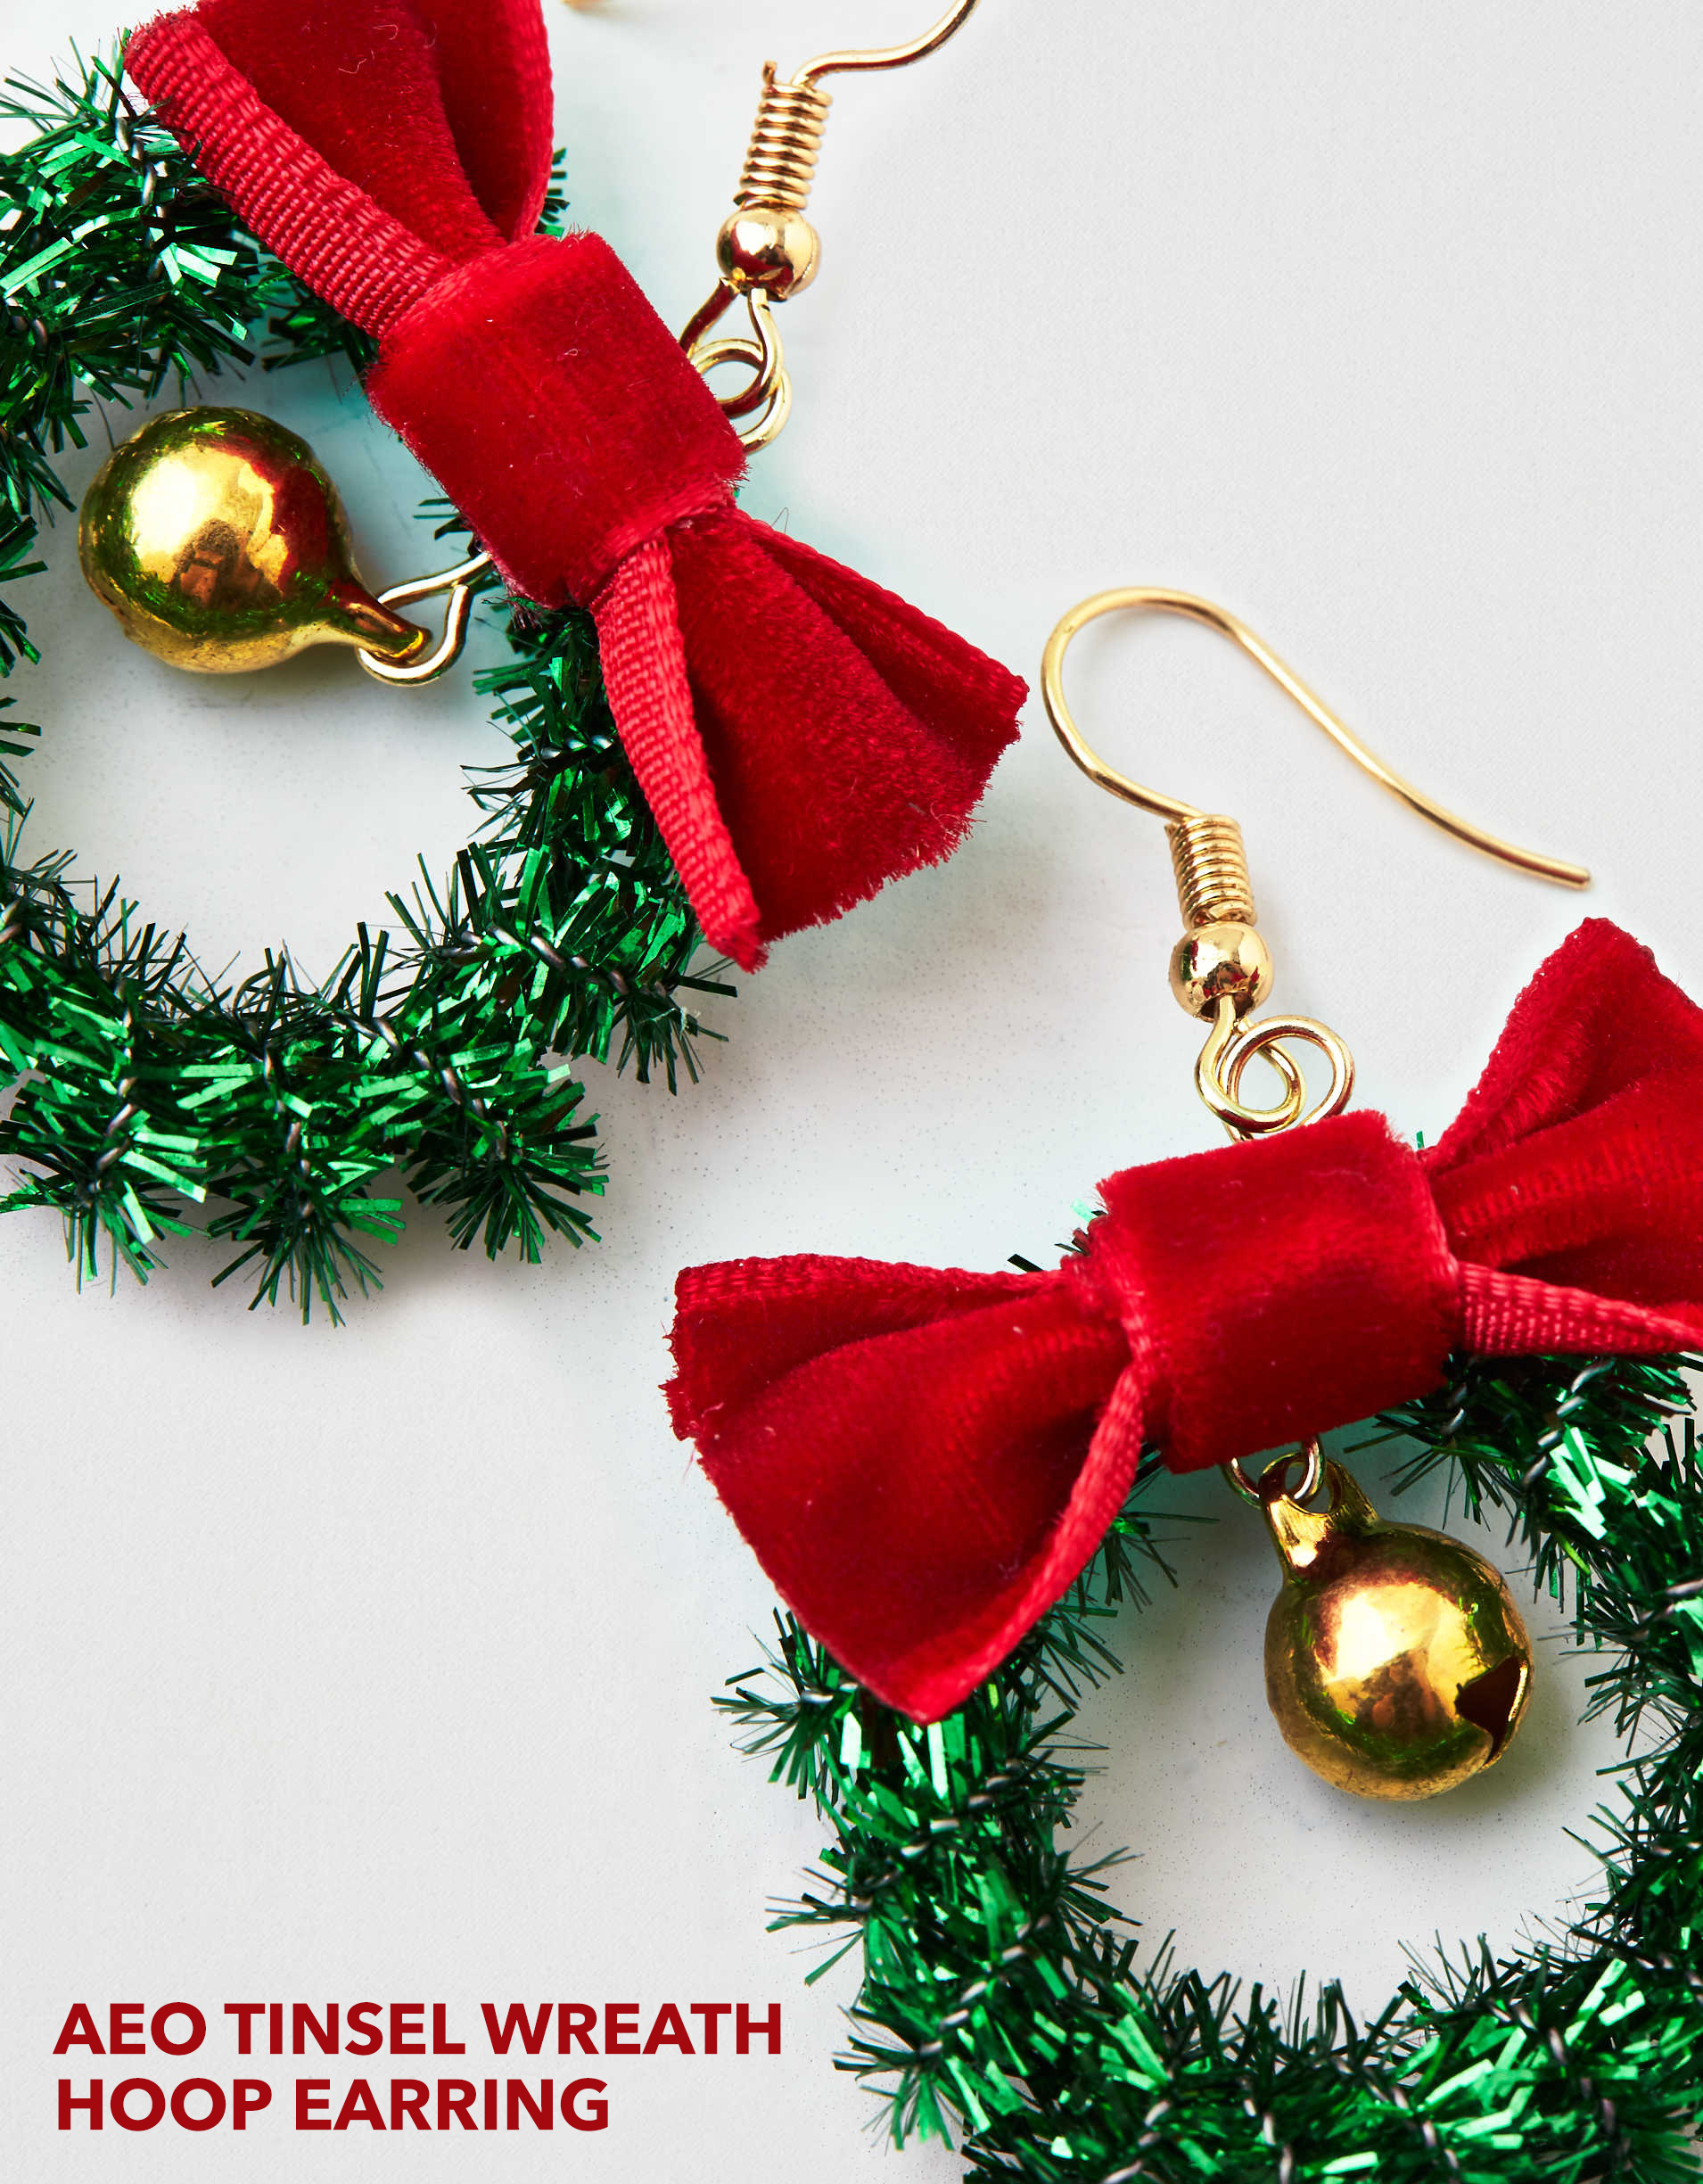 AEO TINSEL WREATH HOOP EARRING